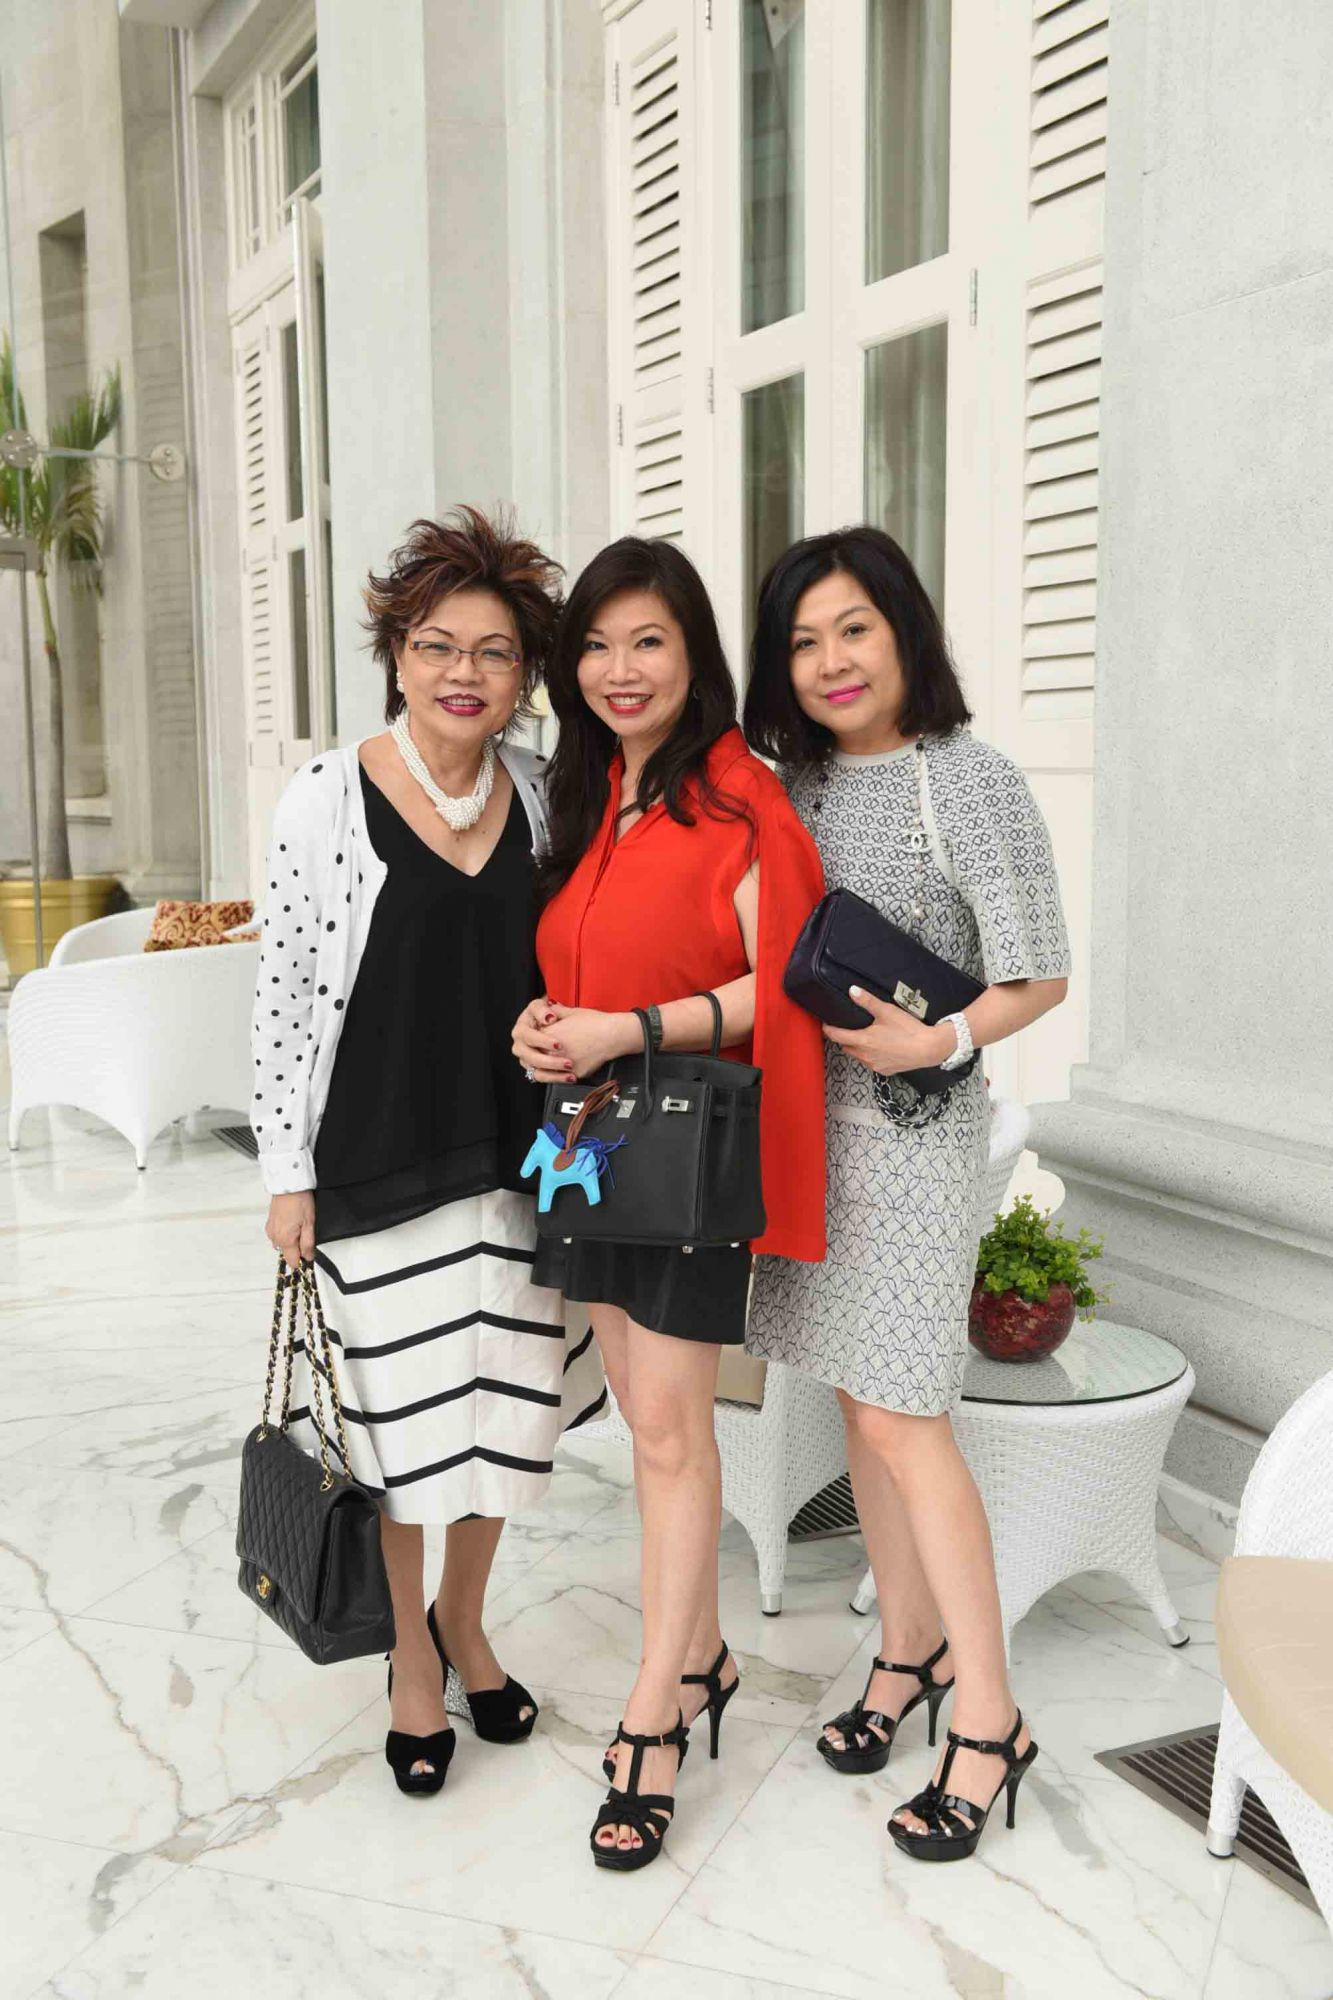 Doris Tan, Jessie Ho-Thong, Lilian Low